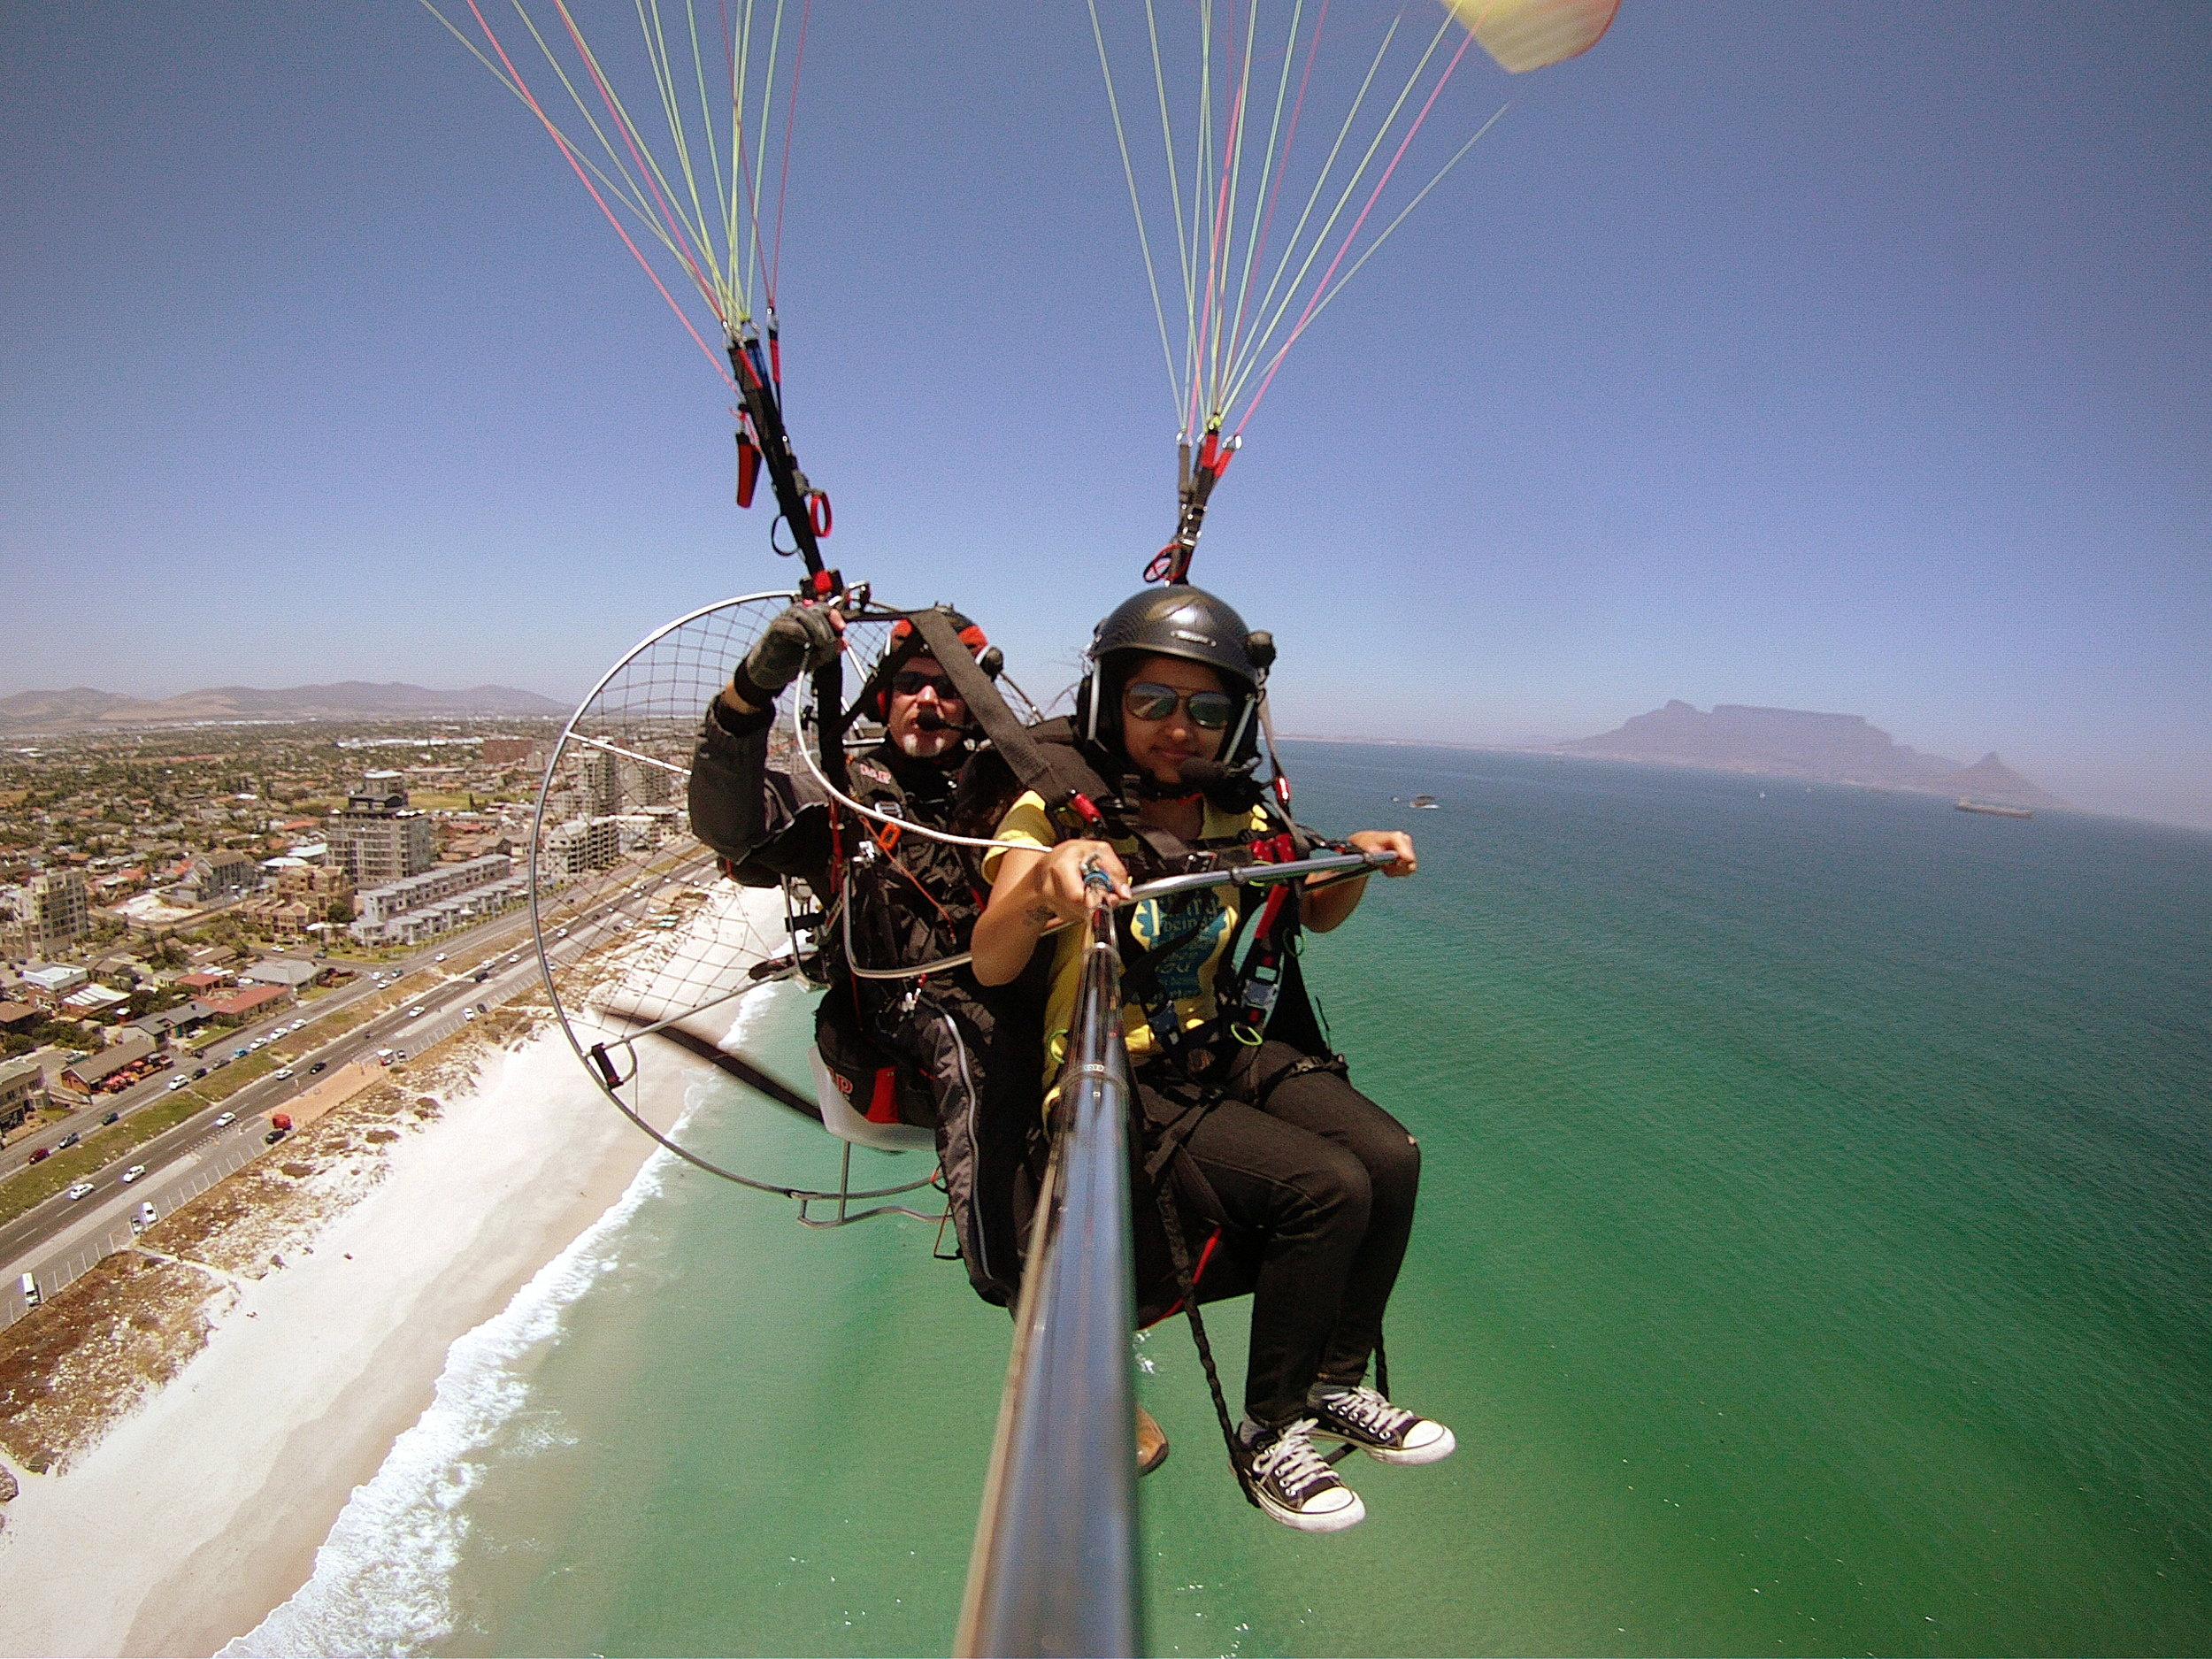 Paramotoring @ 650 ft above sea level